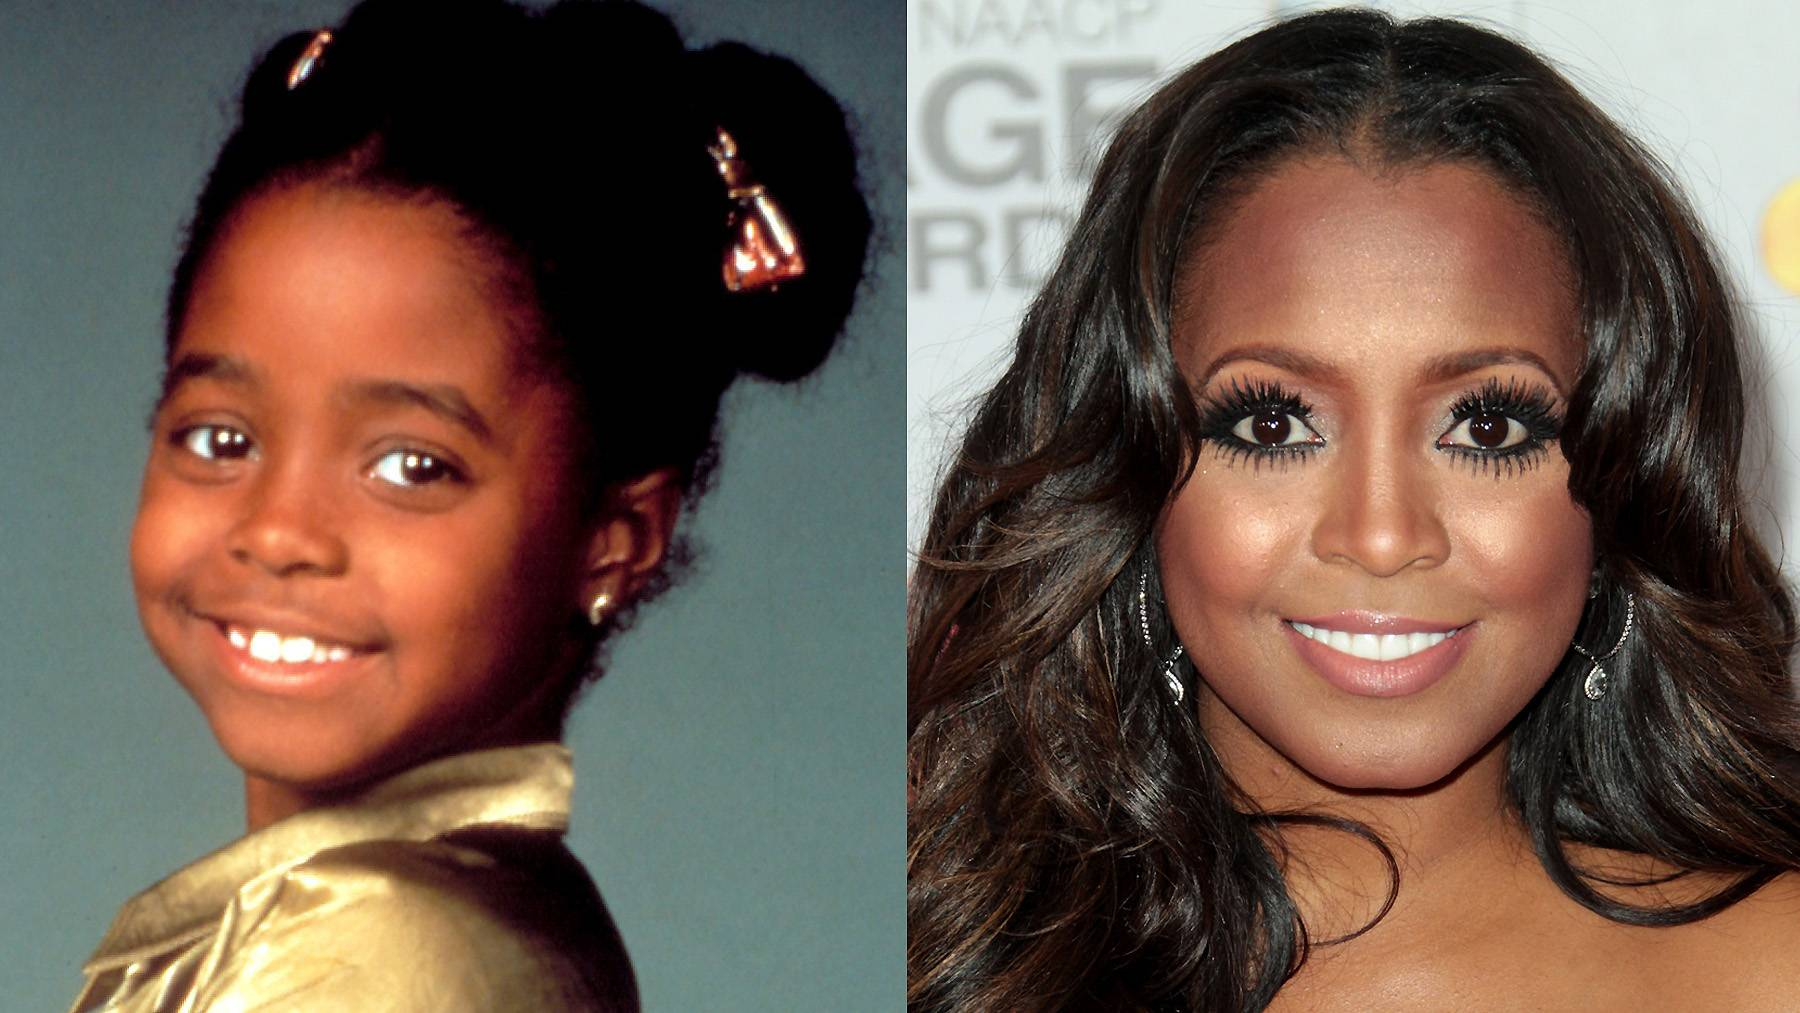 Keshia Knight Pulliam - Pulliam stole the show long before Raven-Symon? came into the picture as Rudy Huxtable on The Cosby Show. The actress continued to hold her own ? with that killer smile and doe-eyed look ? on Tyler Perry's House of Payne and as a recent contestant on celeb diving show Splash.  (Photos from left: Courtesy Everett Collection, Frederick M. Brown/Getty Images for NAACP Image Awards)